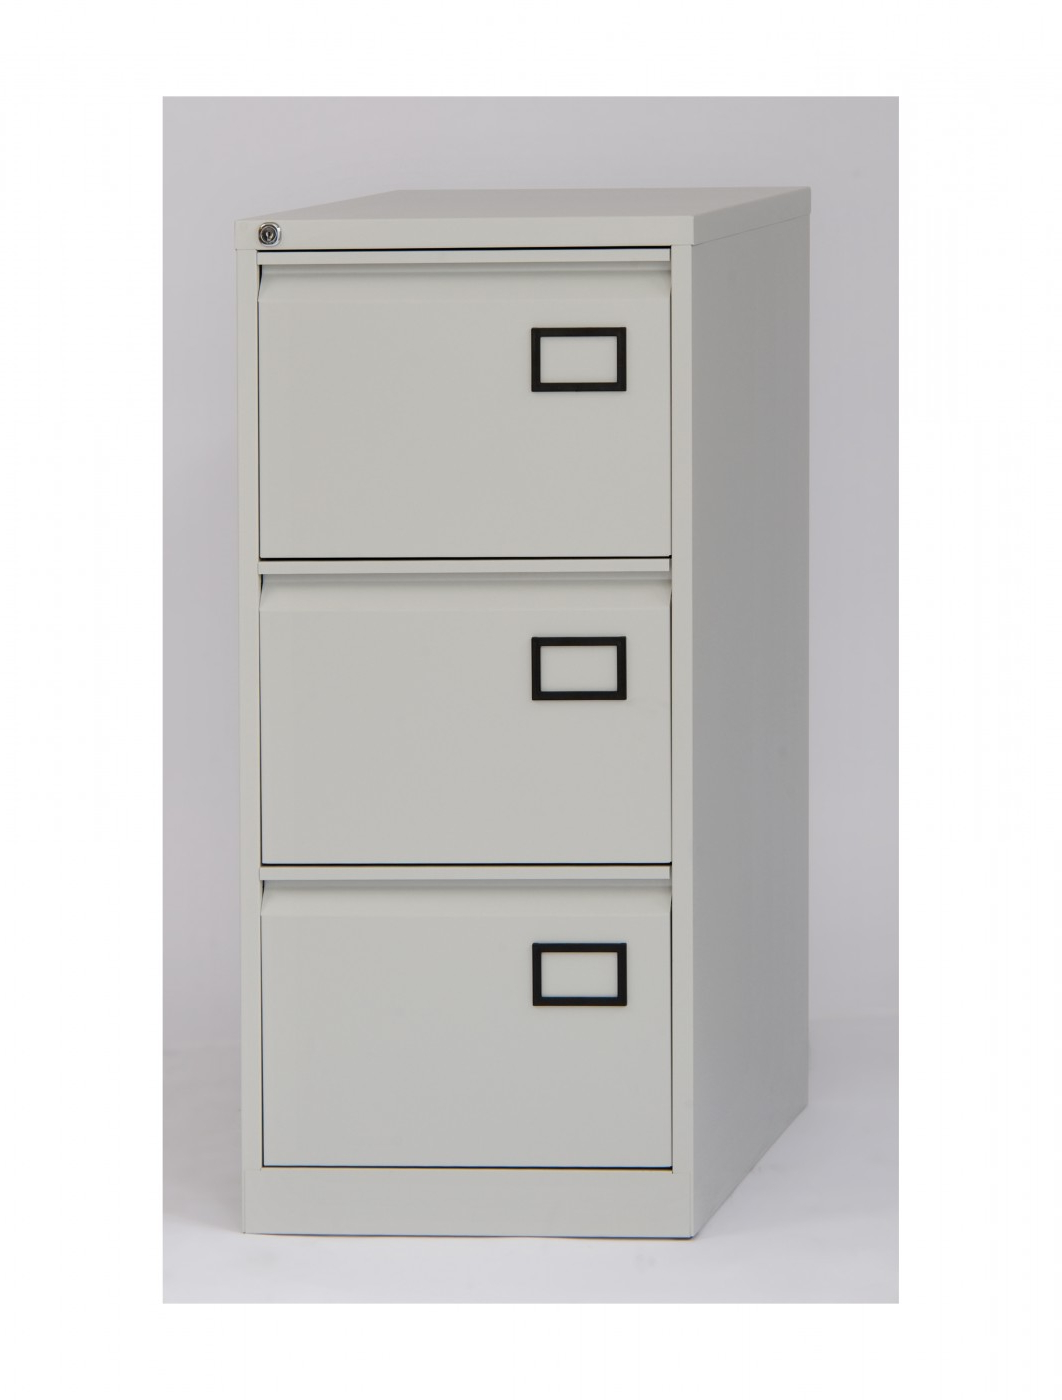 Filing Cabinets D0dg Economy Filing Cabinet Def3 121 Office Furniture